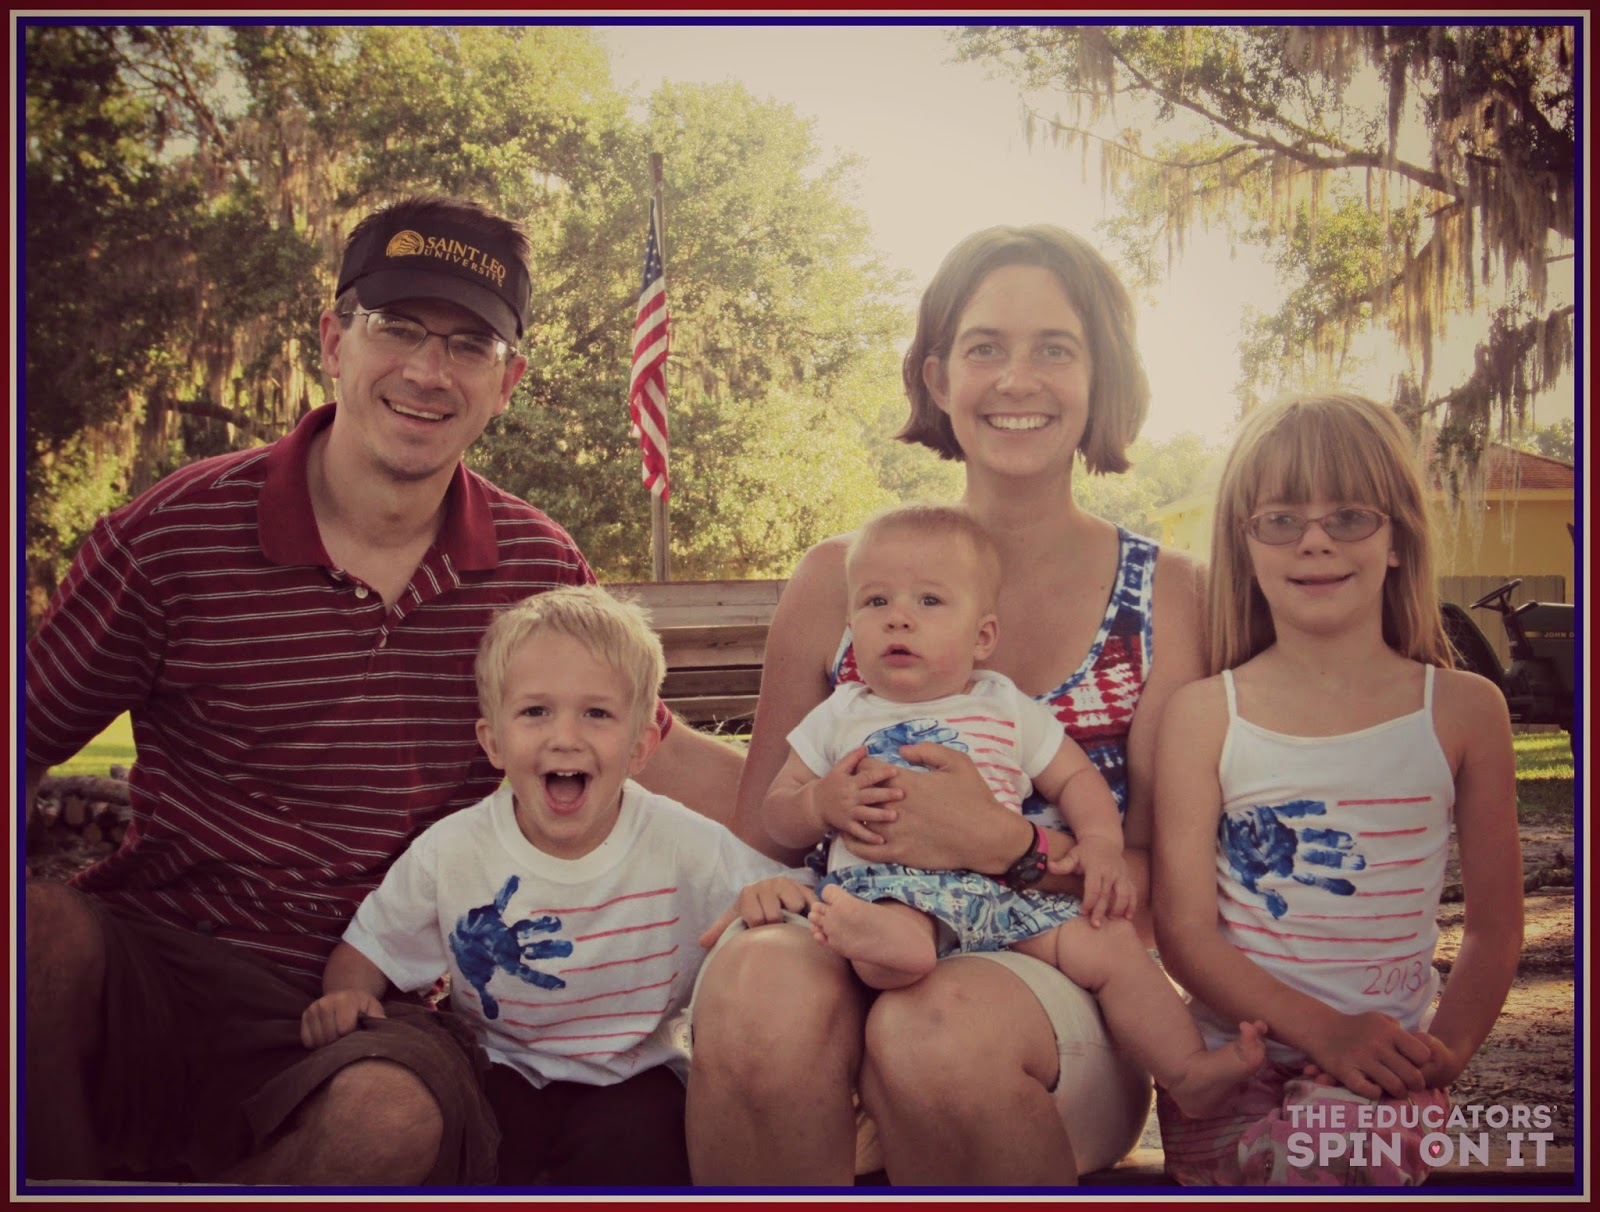 Patriotic family picture